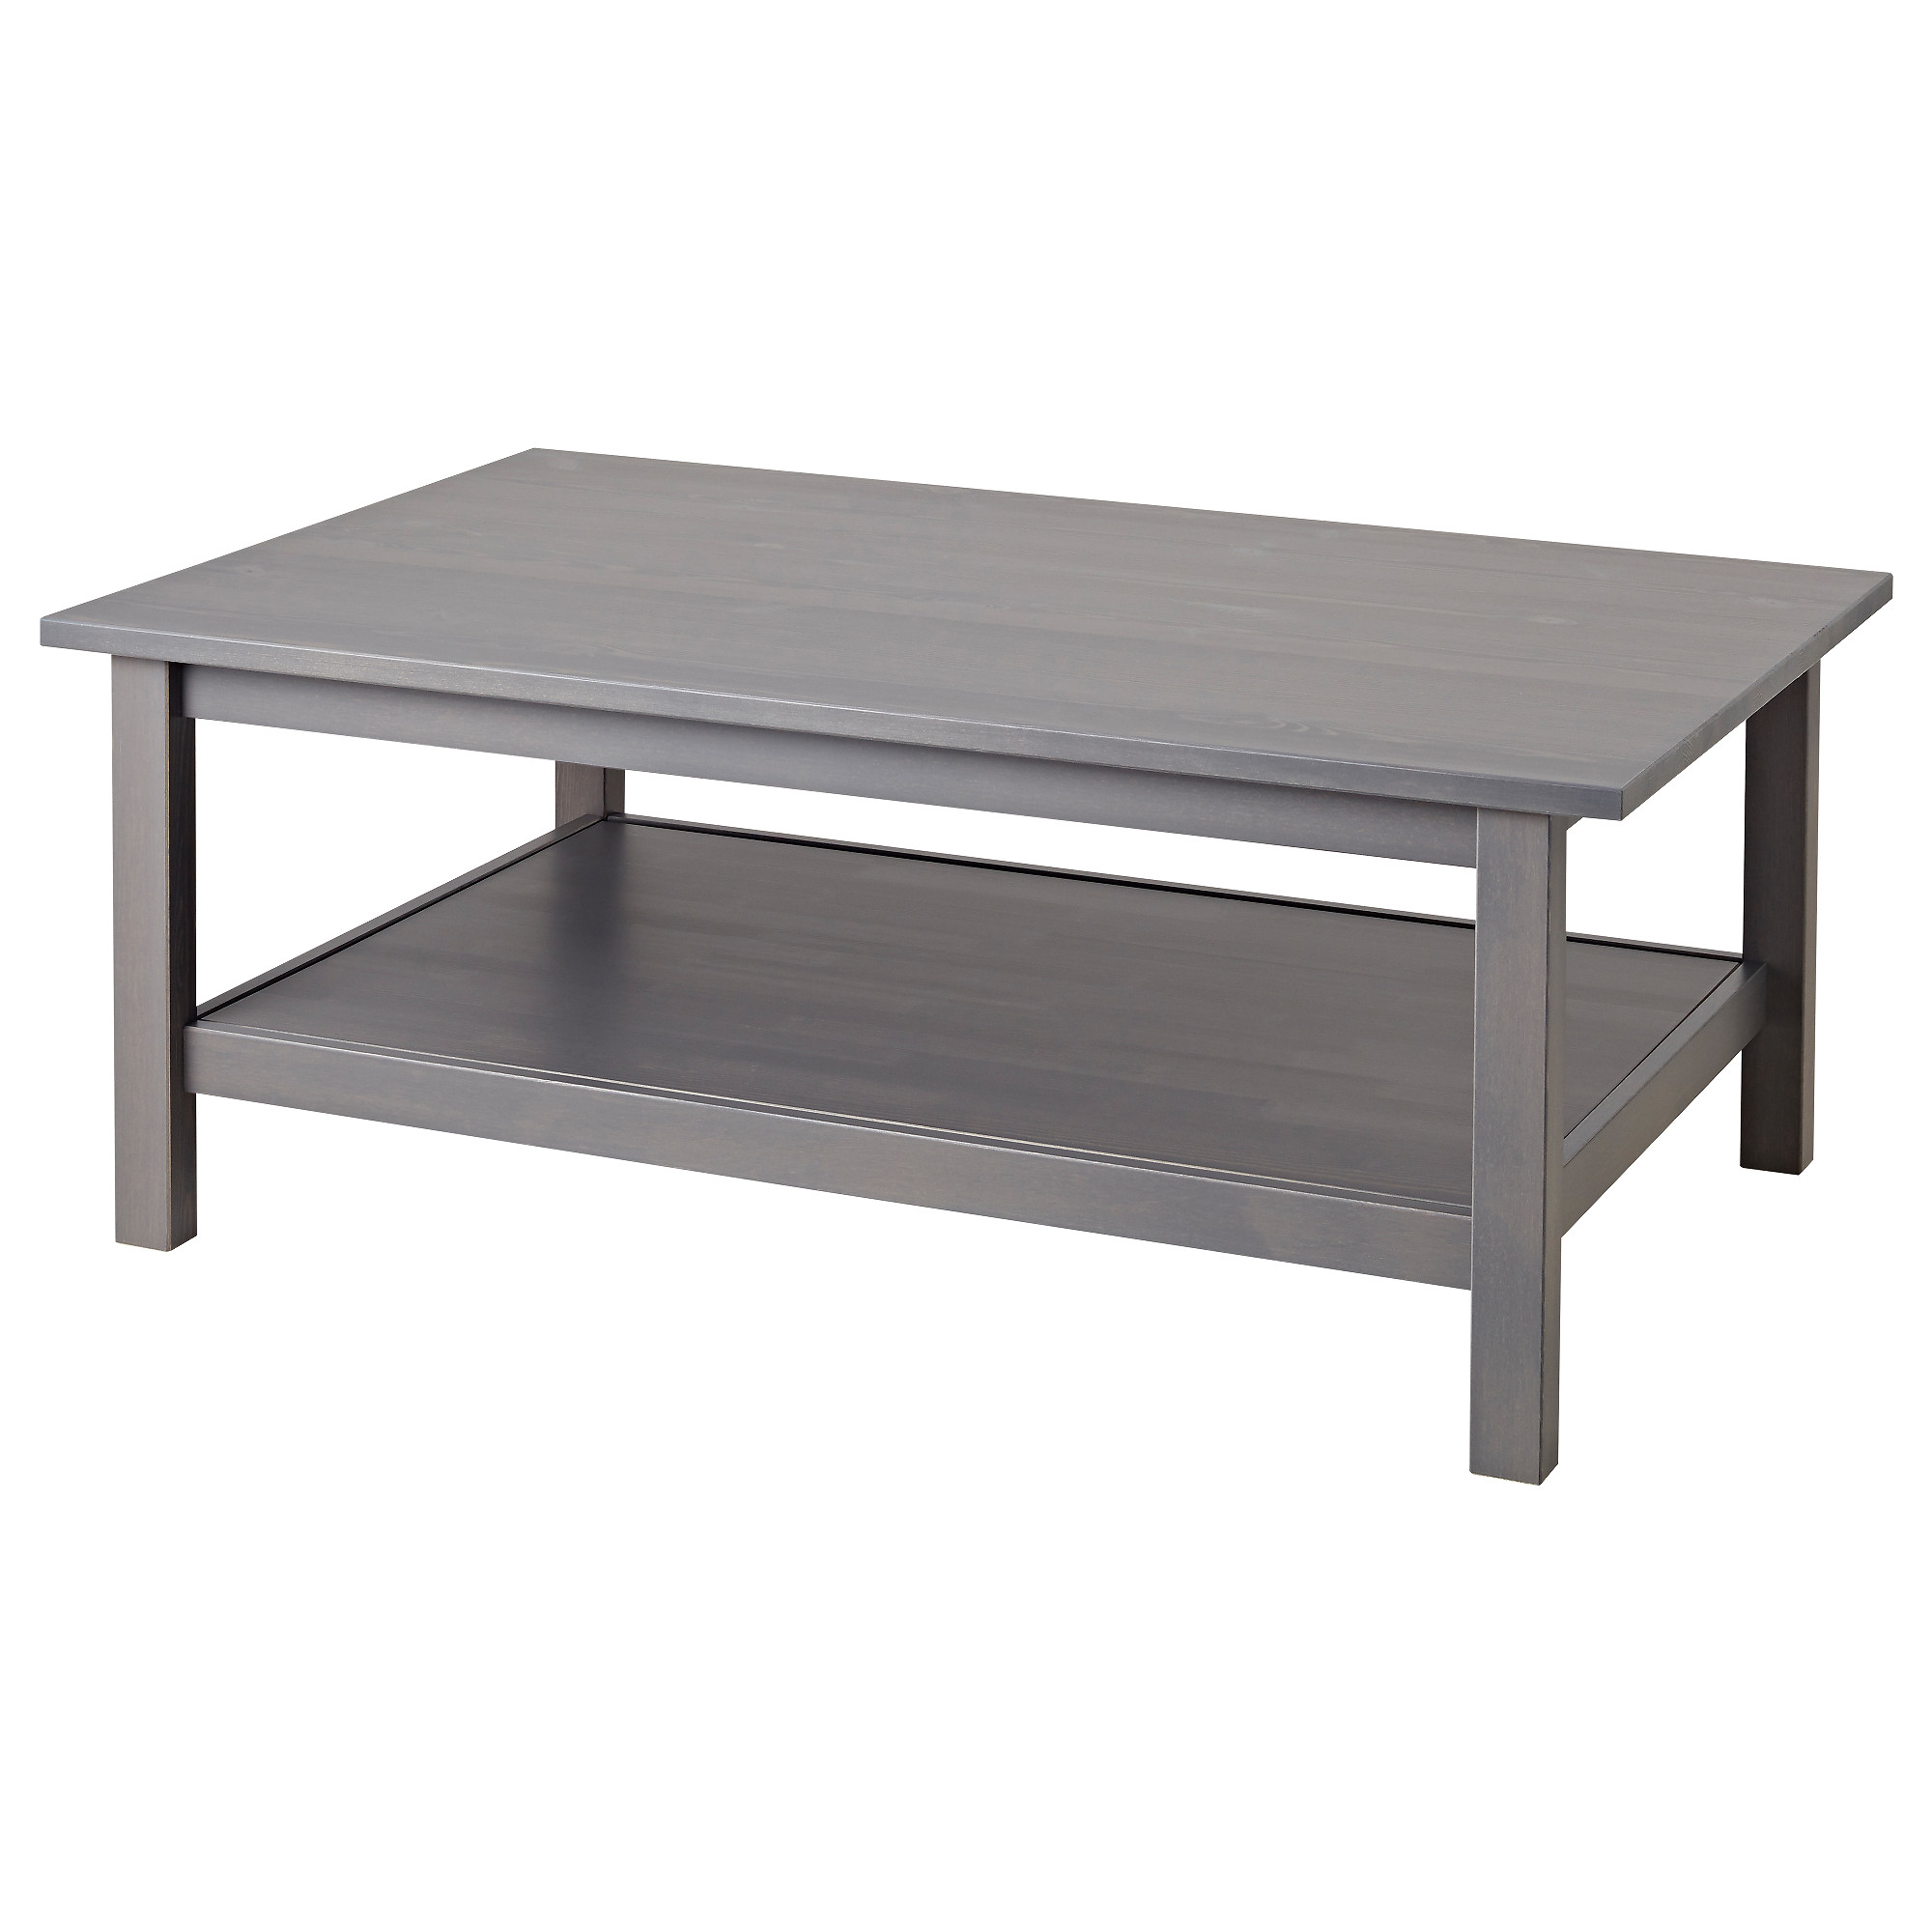 Coffee tables glass wooden coffee tables ikea hemnes coffee table dark gray gray stained length 46 12 width geotapseo Choice Image